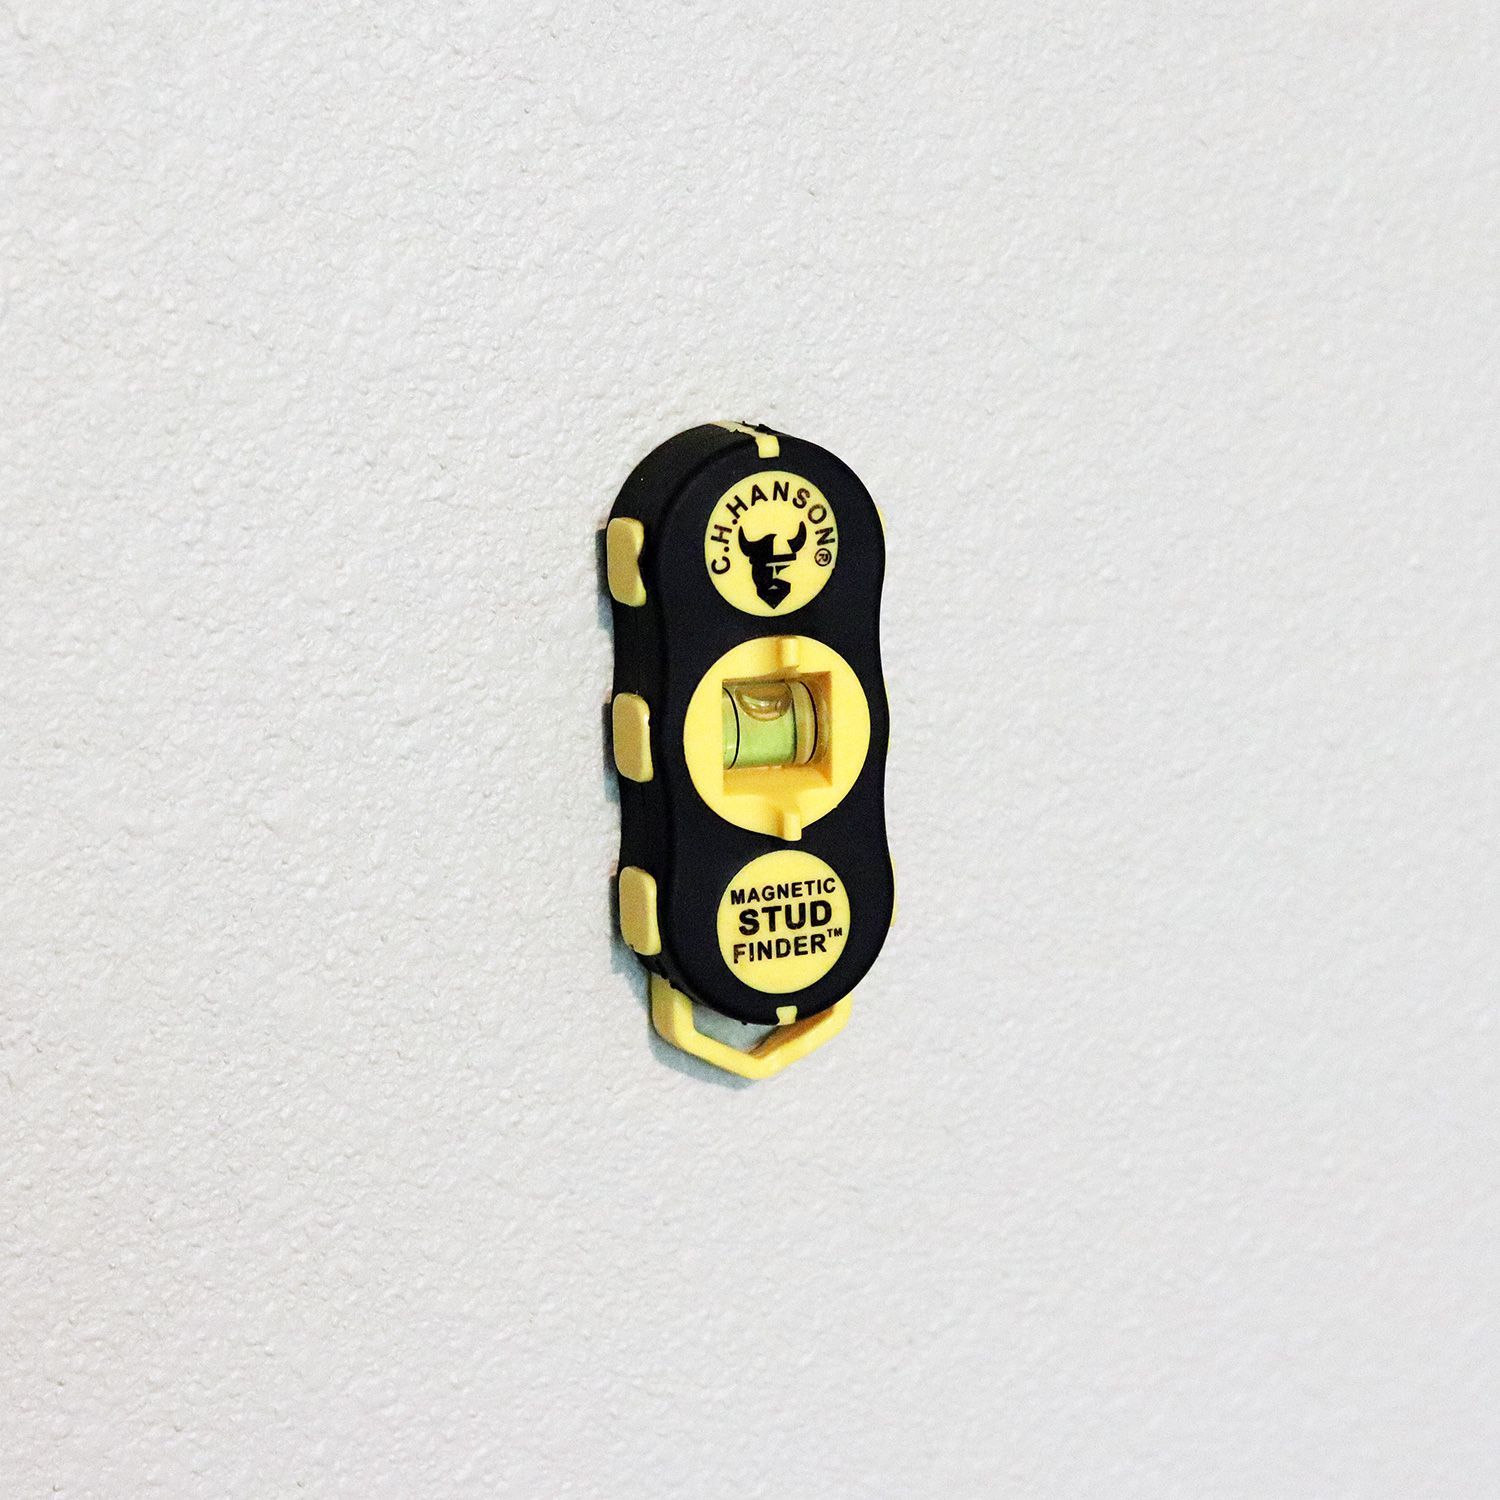 ch hanson 03040 magnetic stud finder review